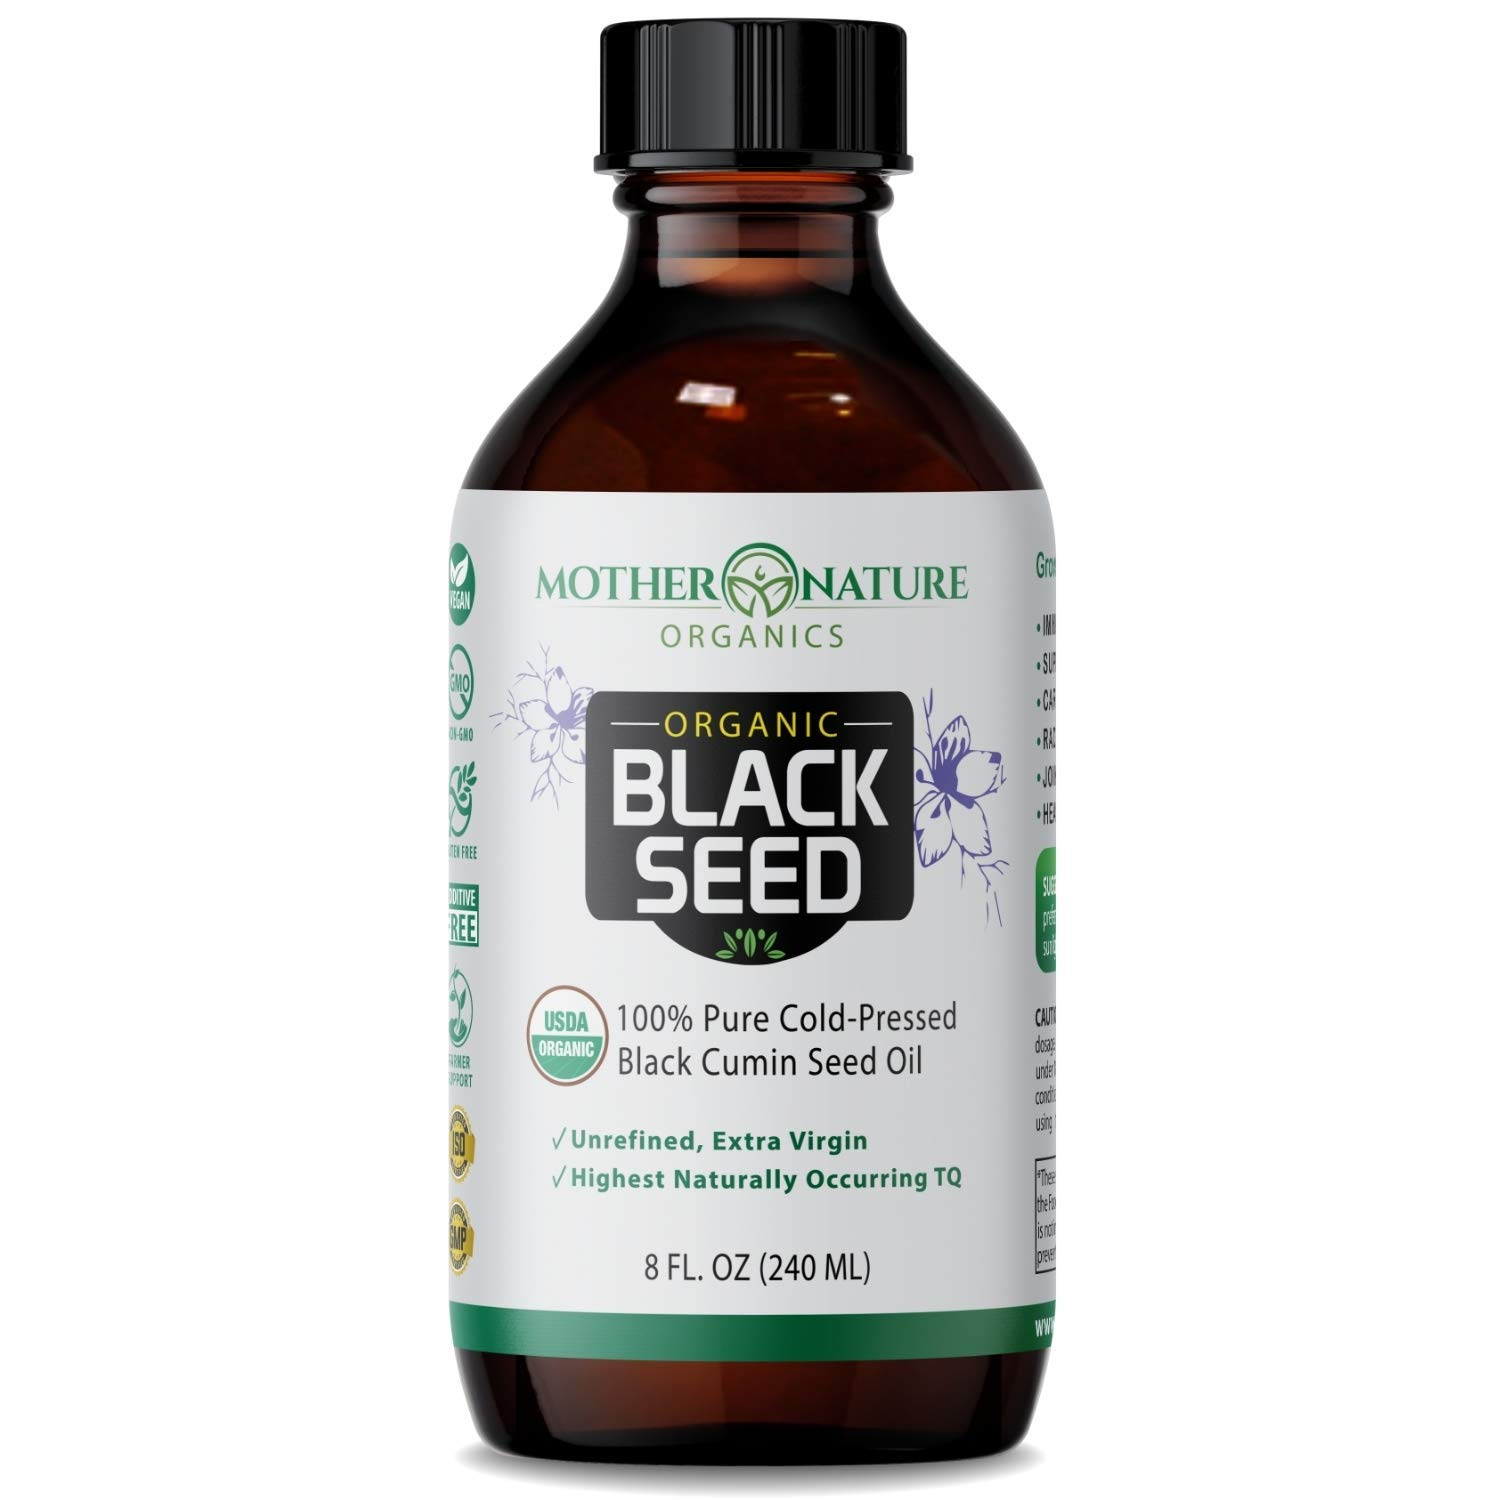 Black Seed Oil - Premium Organic Cold-Pressed Cumin Nigella Sativa (8 oz) - for Immunity Support, Joints, Digestion, Hair & Skin - Extra Virgin, Gluten-Free, Non-GMO & Vegan with Omega 3,6, & 9